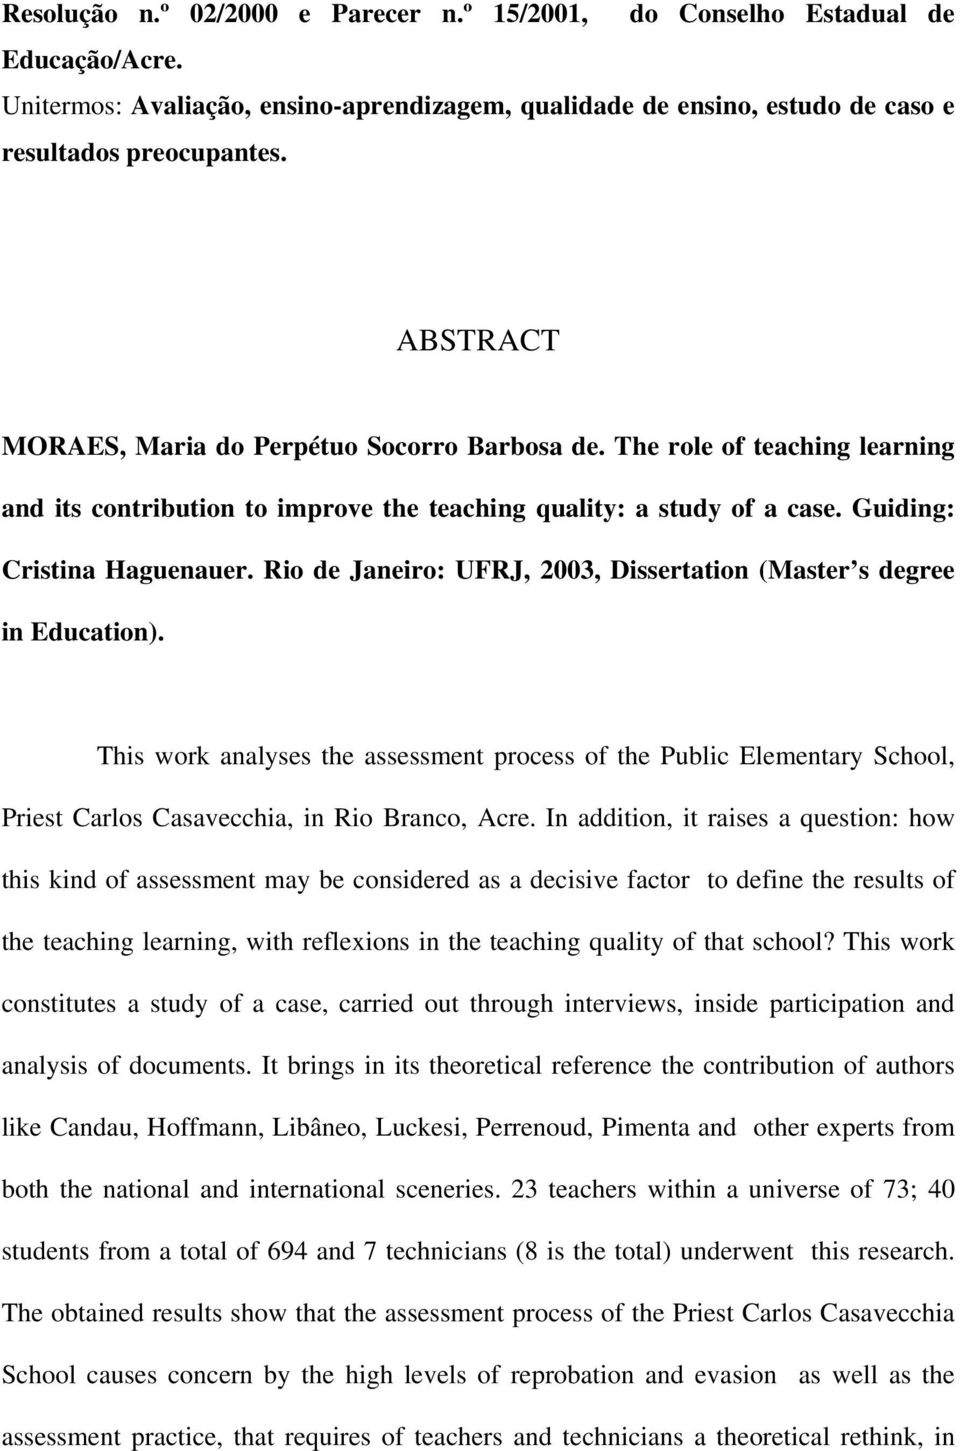 Rio de Janeiro: UFRJ, 2003, Dissertation (Master s degree in Education). This work analyses the assessment process of the Public Elementary School, Priest Carlos Casavecchia, in Rio Branco, Acre.